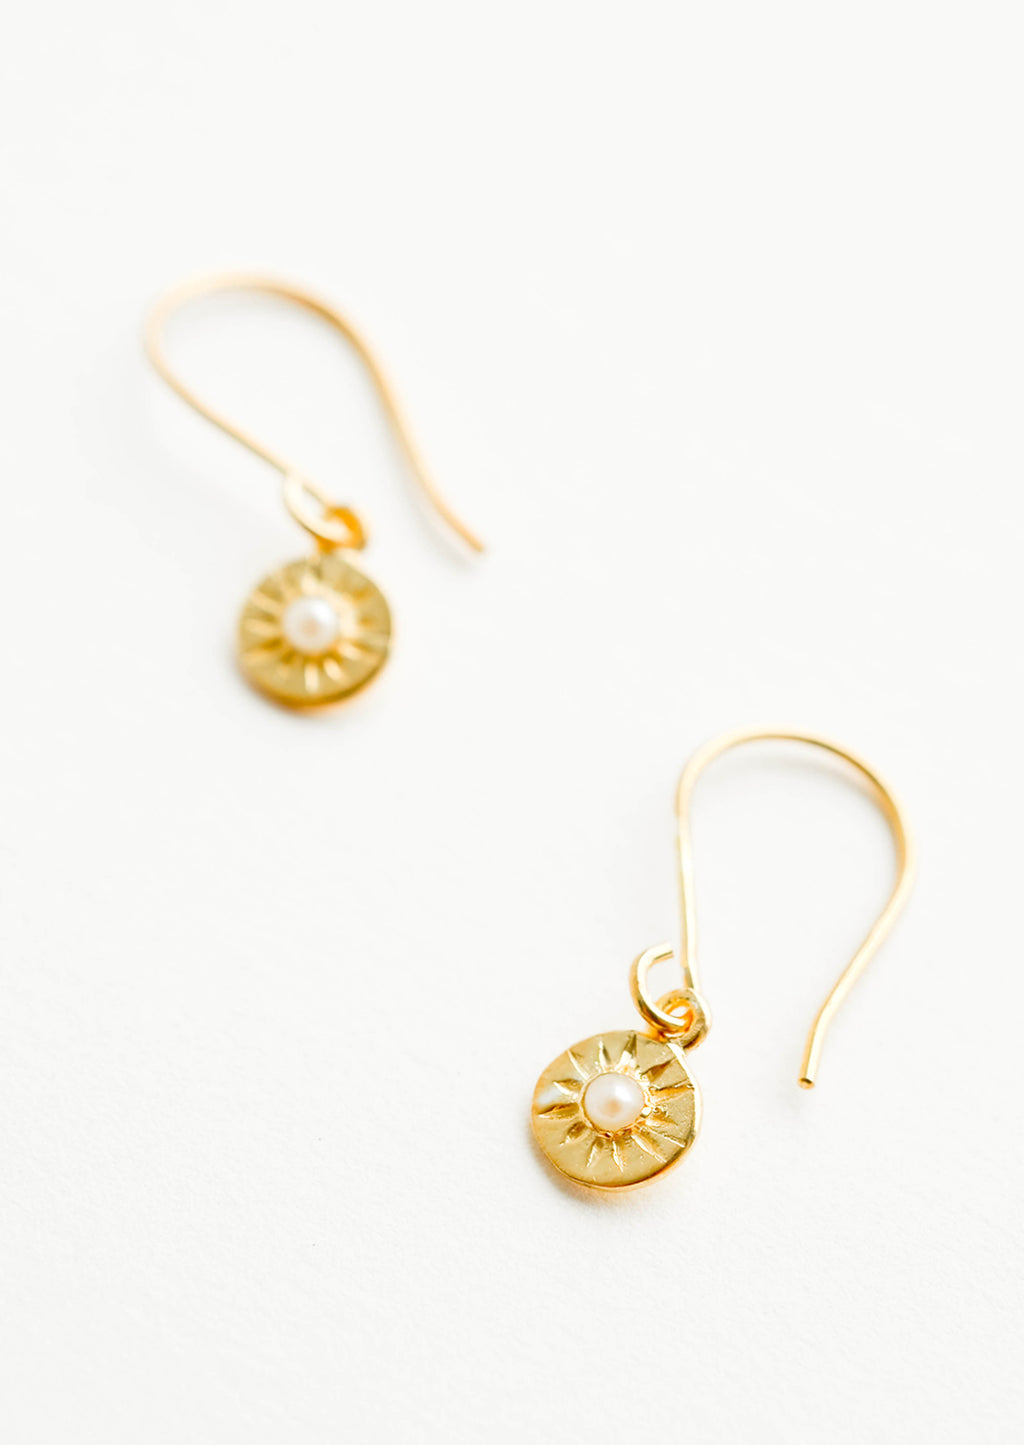 Pearl: Dangling gold earrings, hanging from the earring stem is a small gold circular charm with pearl inset stone and etched decorative lines.